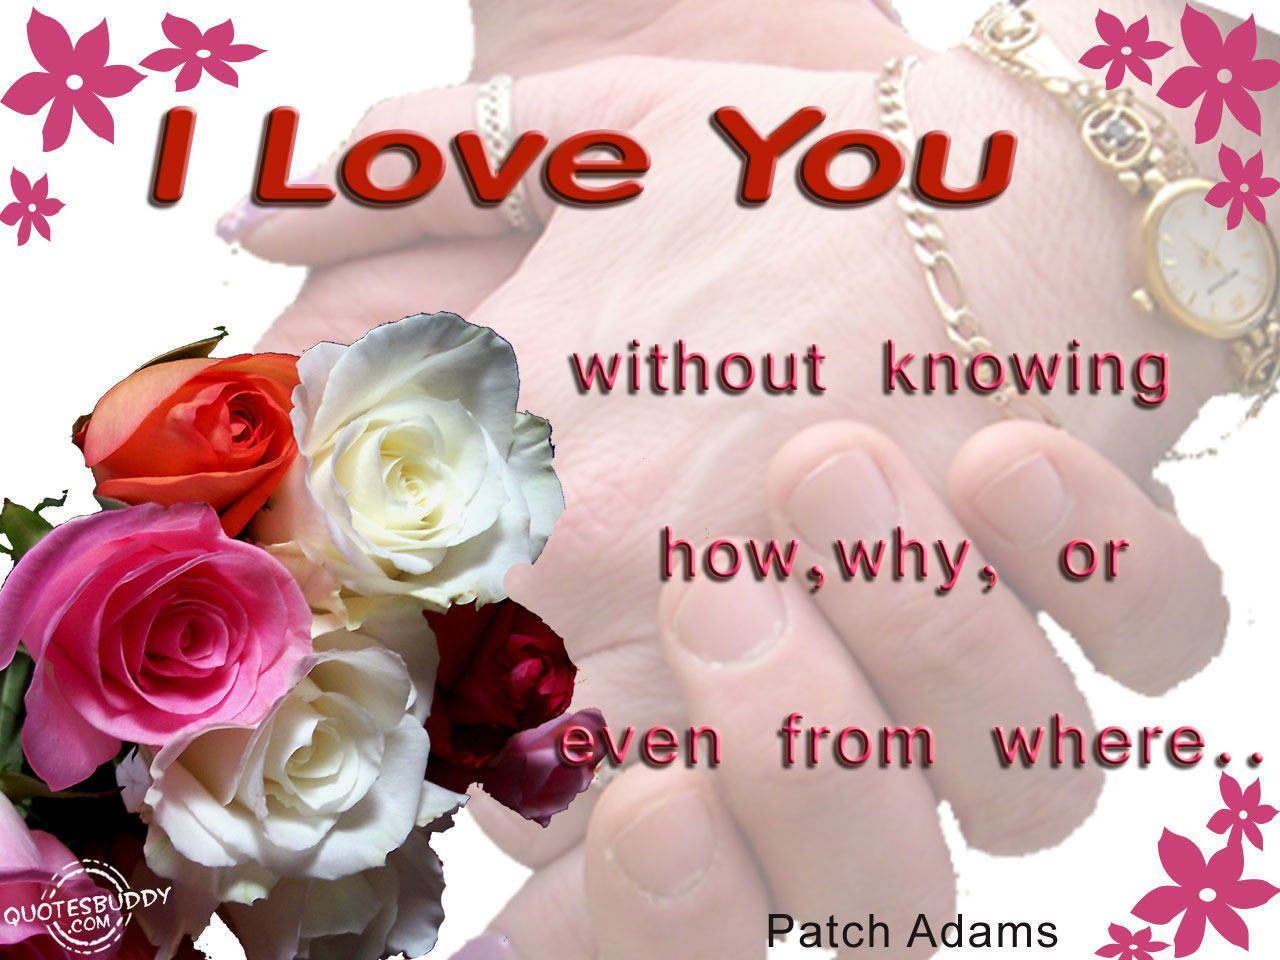 I Love You Images Hd, Images Collection of I Love You HD  nROJ 1280x960